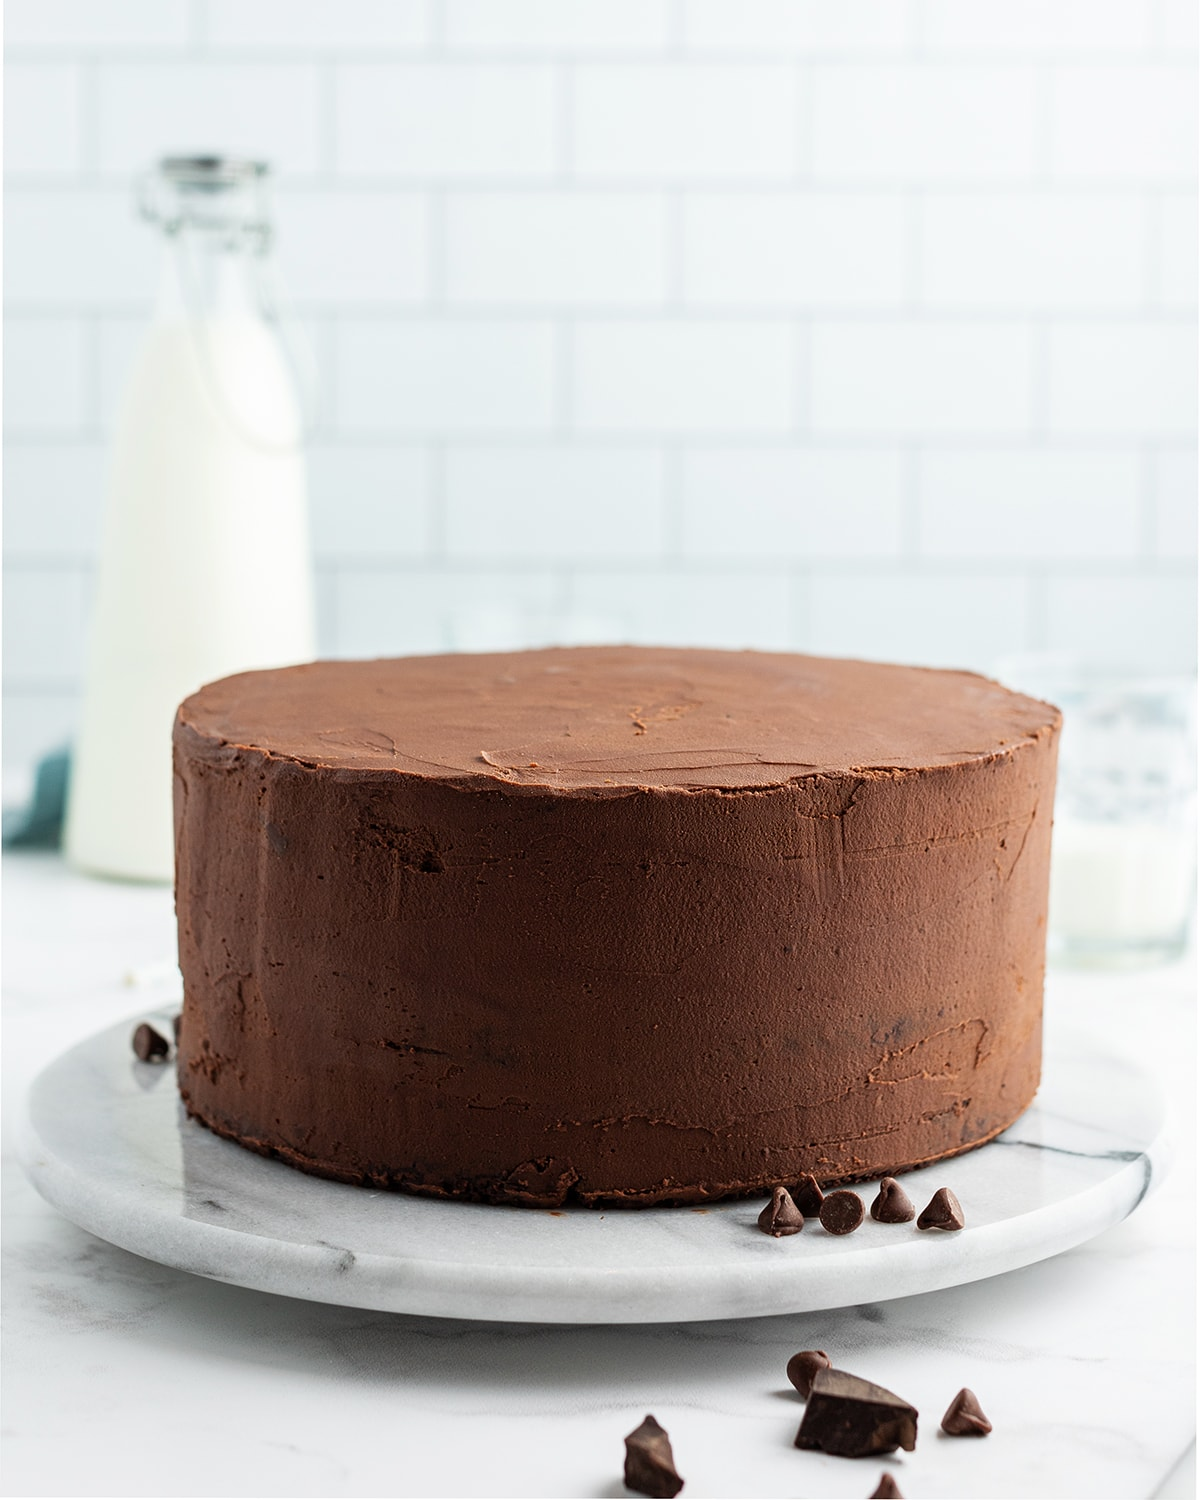 A chocolate cake, plainly frosted with smooth chocolate frosting on a white marble cake turner.